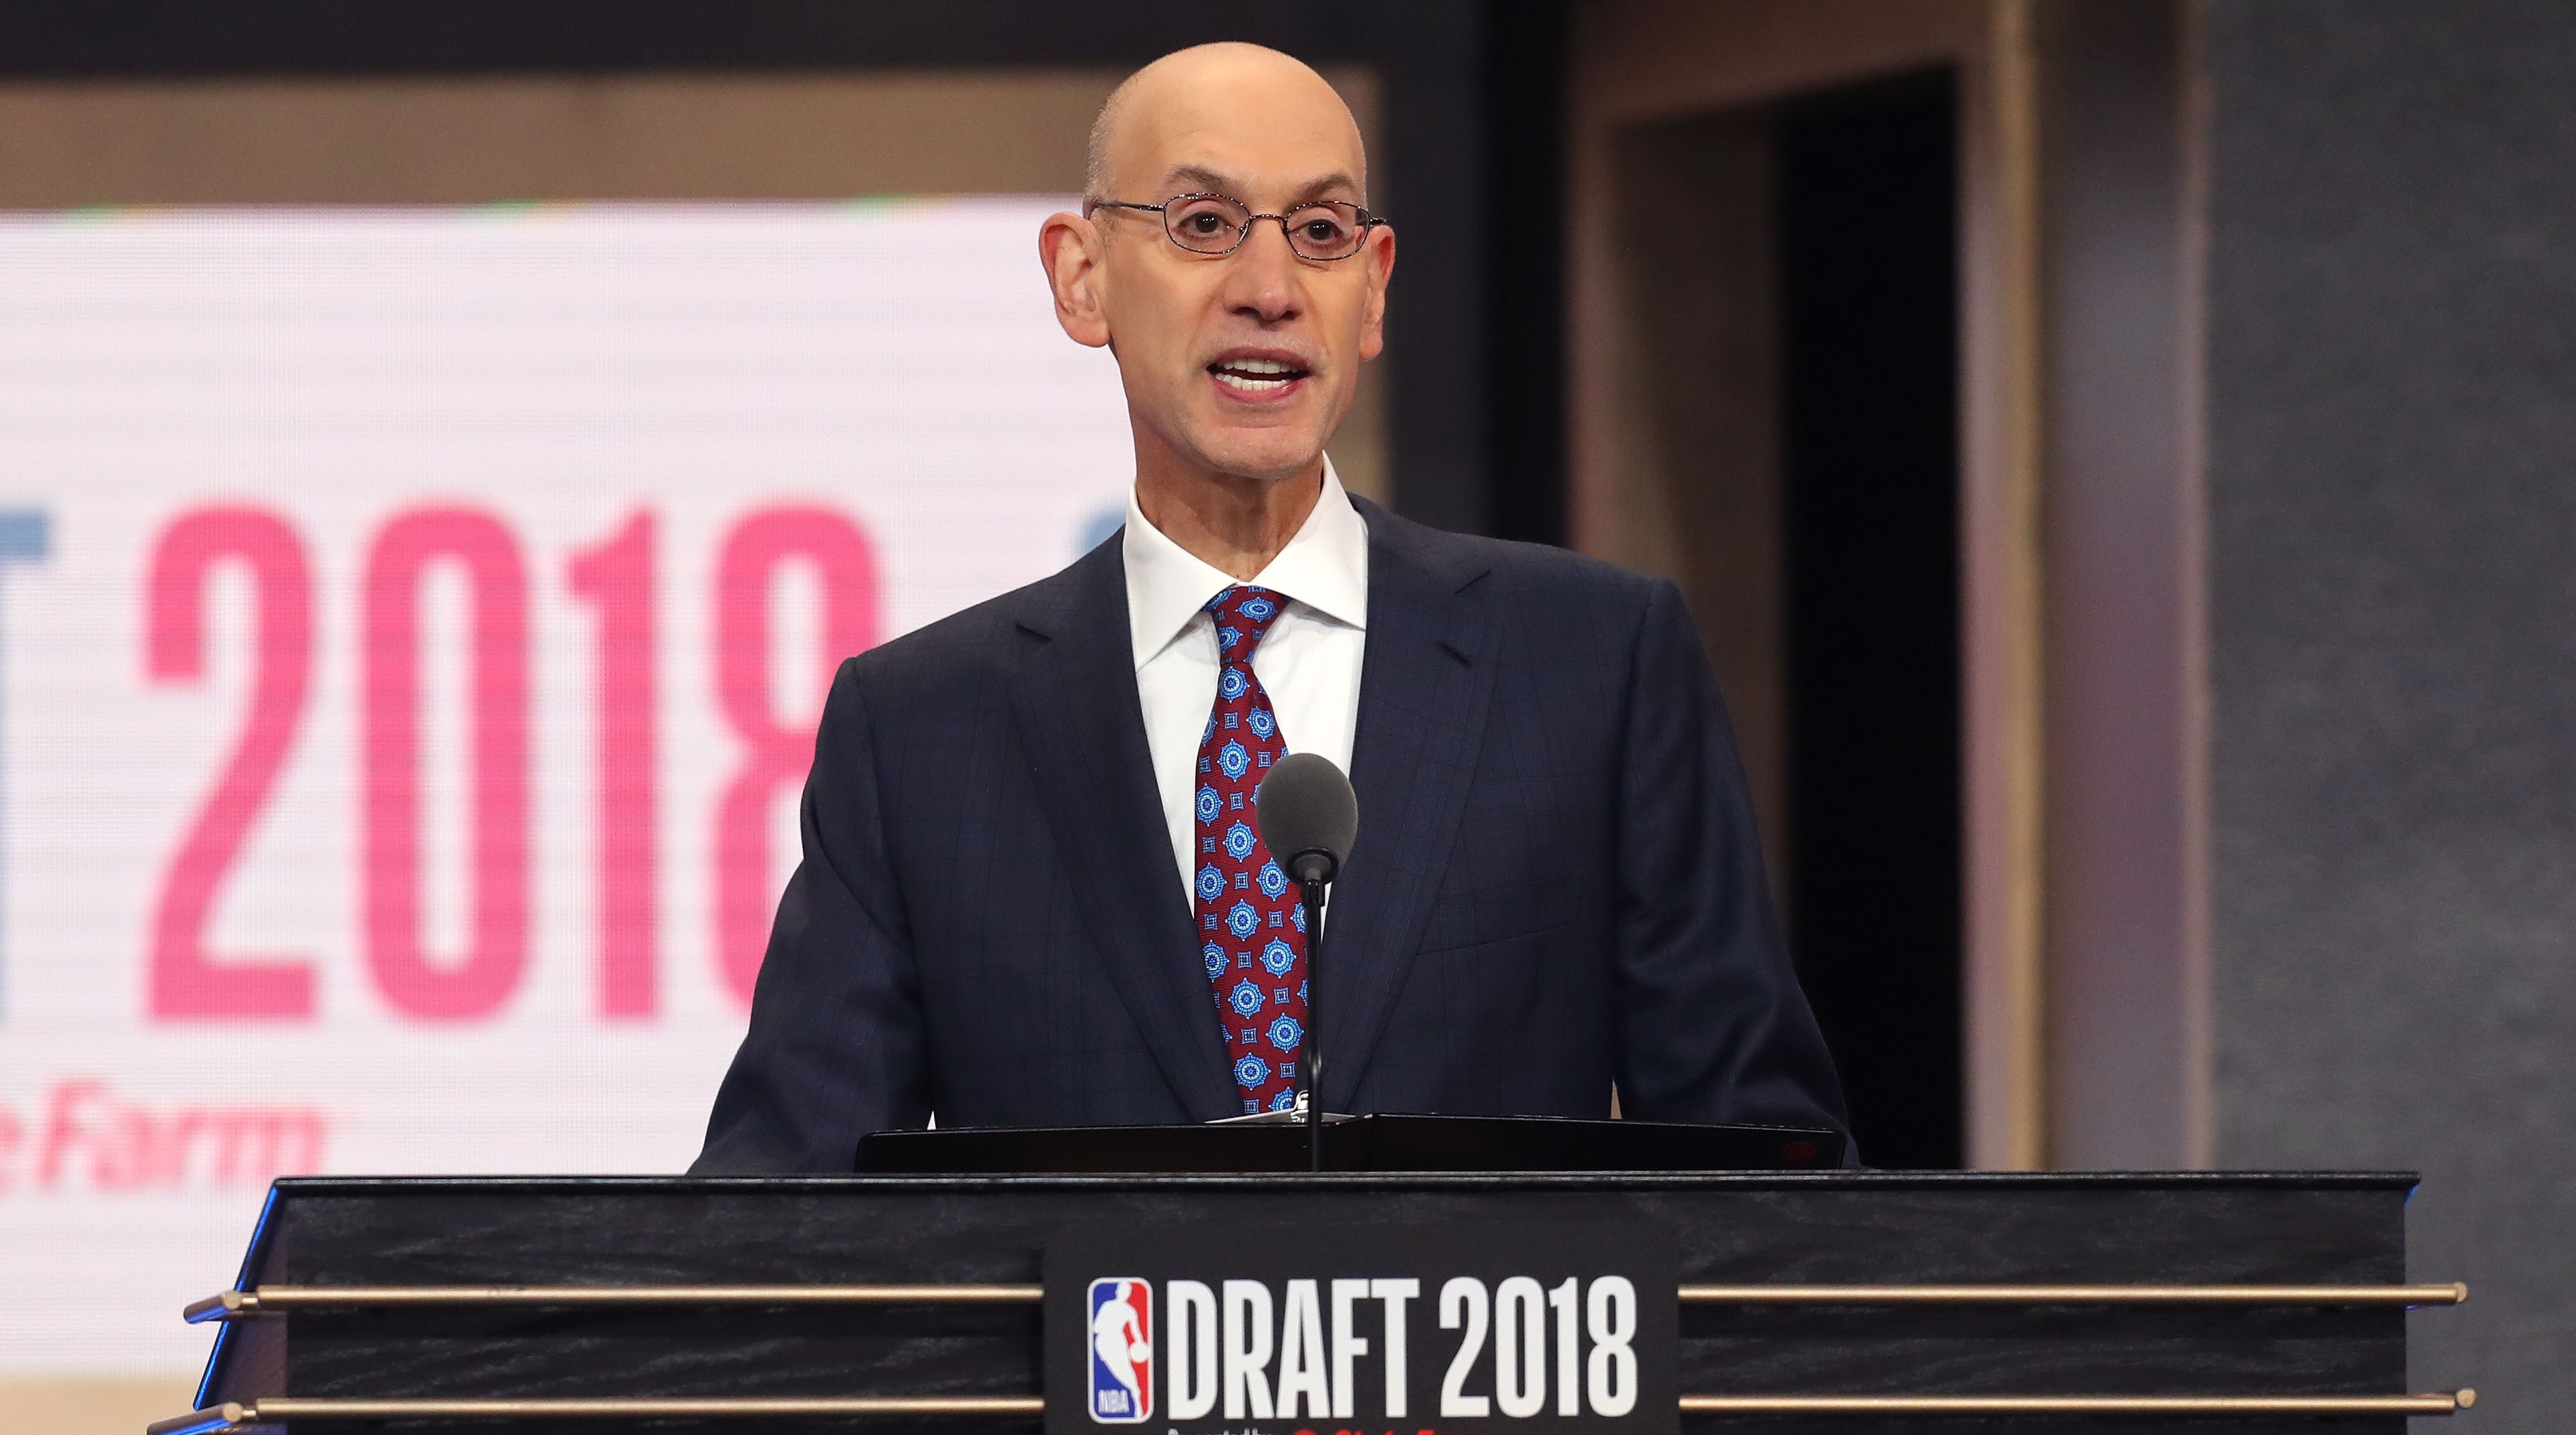 NBA, USA basketball blindsided by NCAA's rule changes